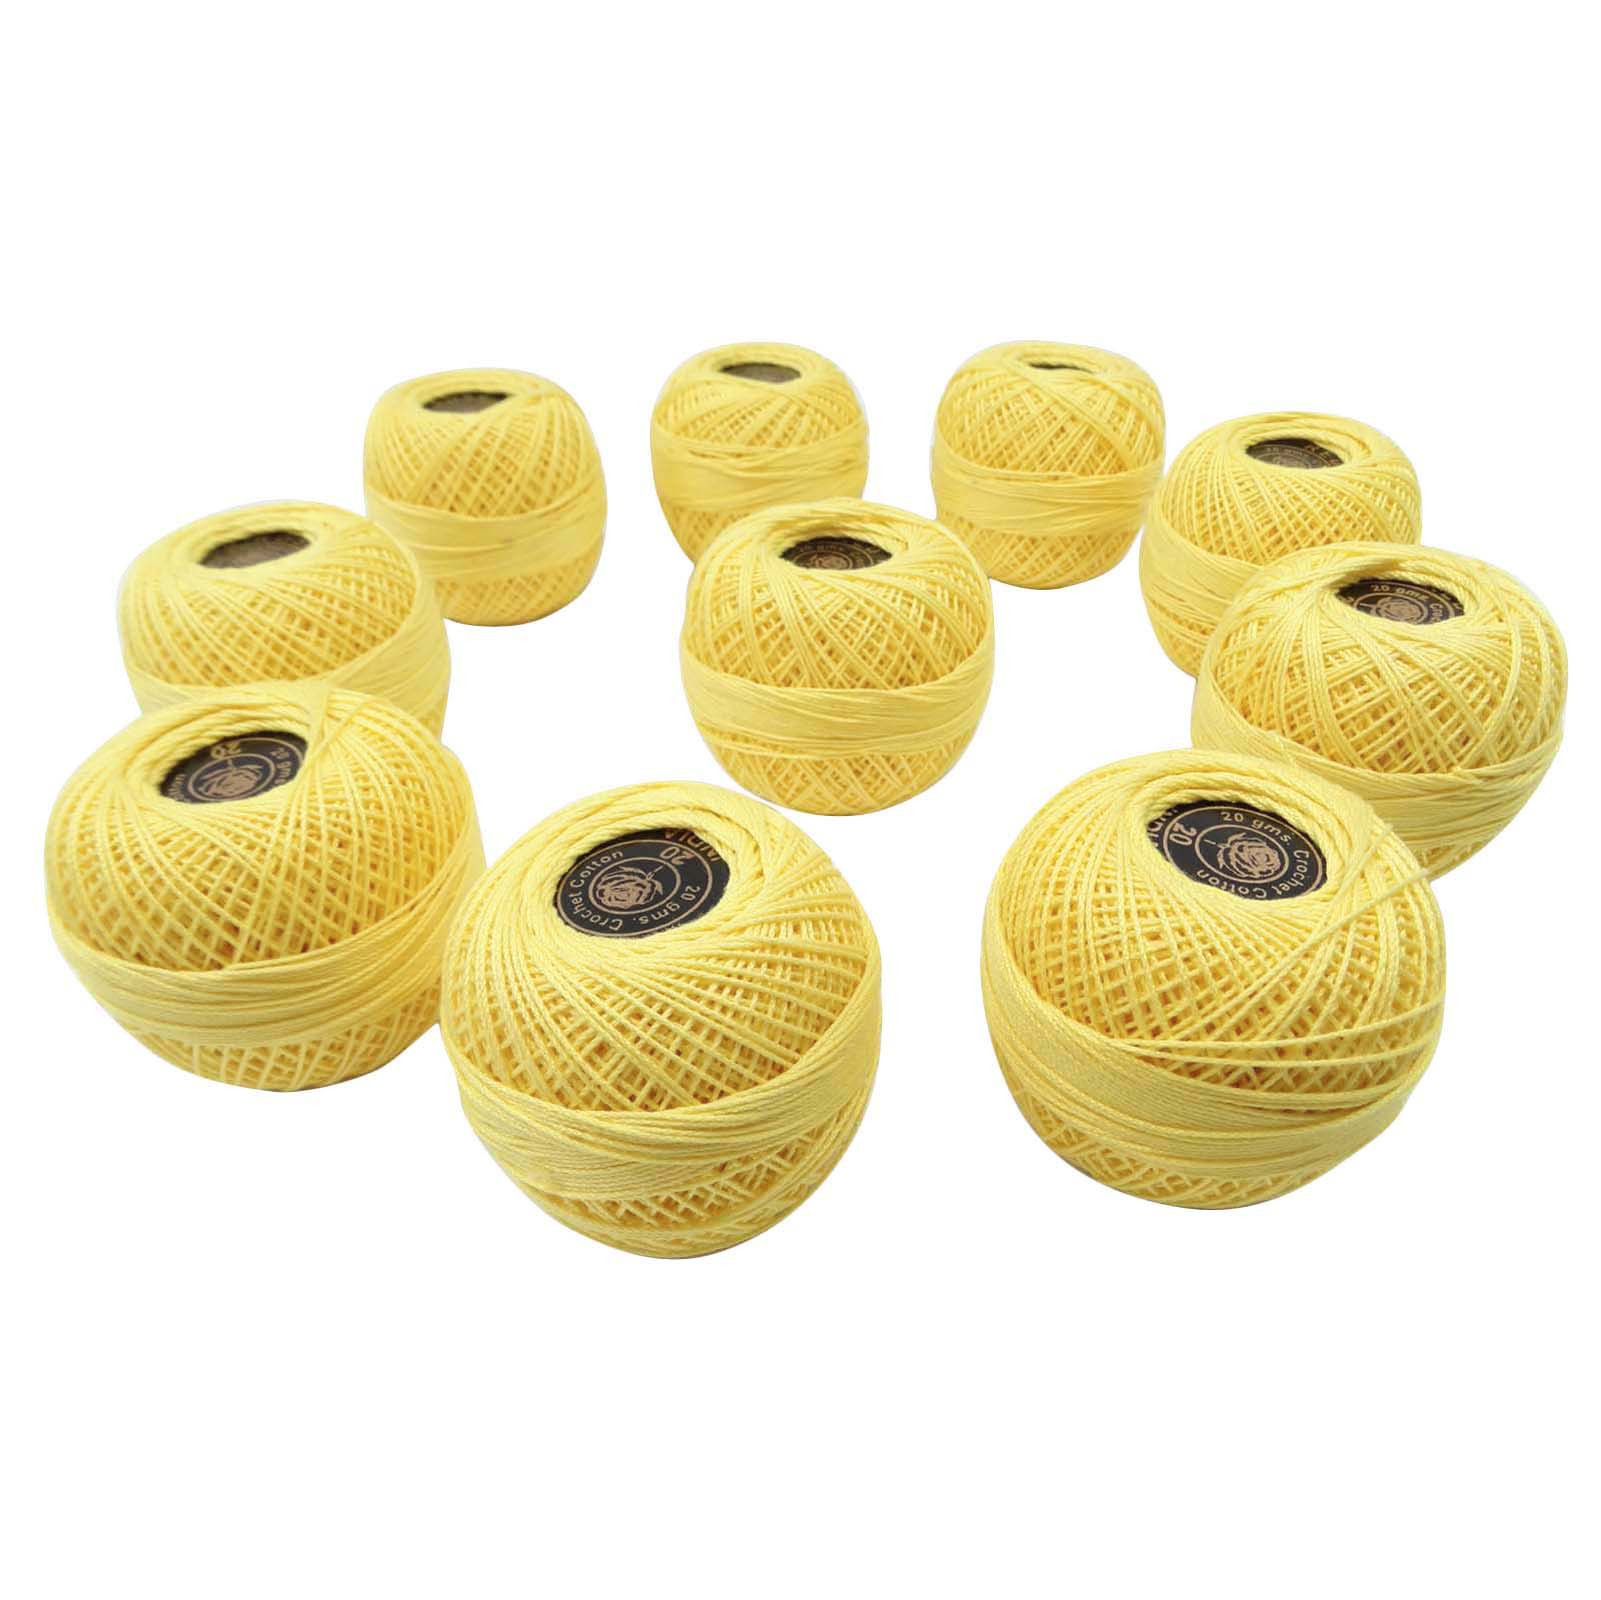 Crochet Thread Sizes Fresh Anchor Crochet Knitting Craft Tatting Yarn Cotton Of Fresh 46 Images Crochet Thread Sizes